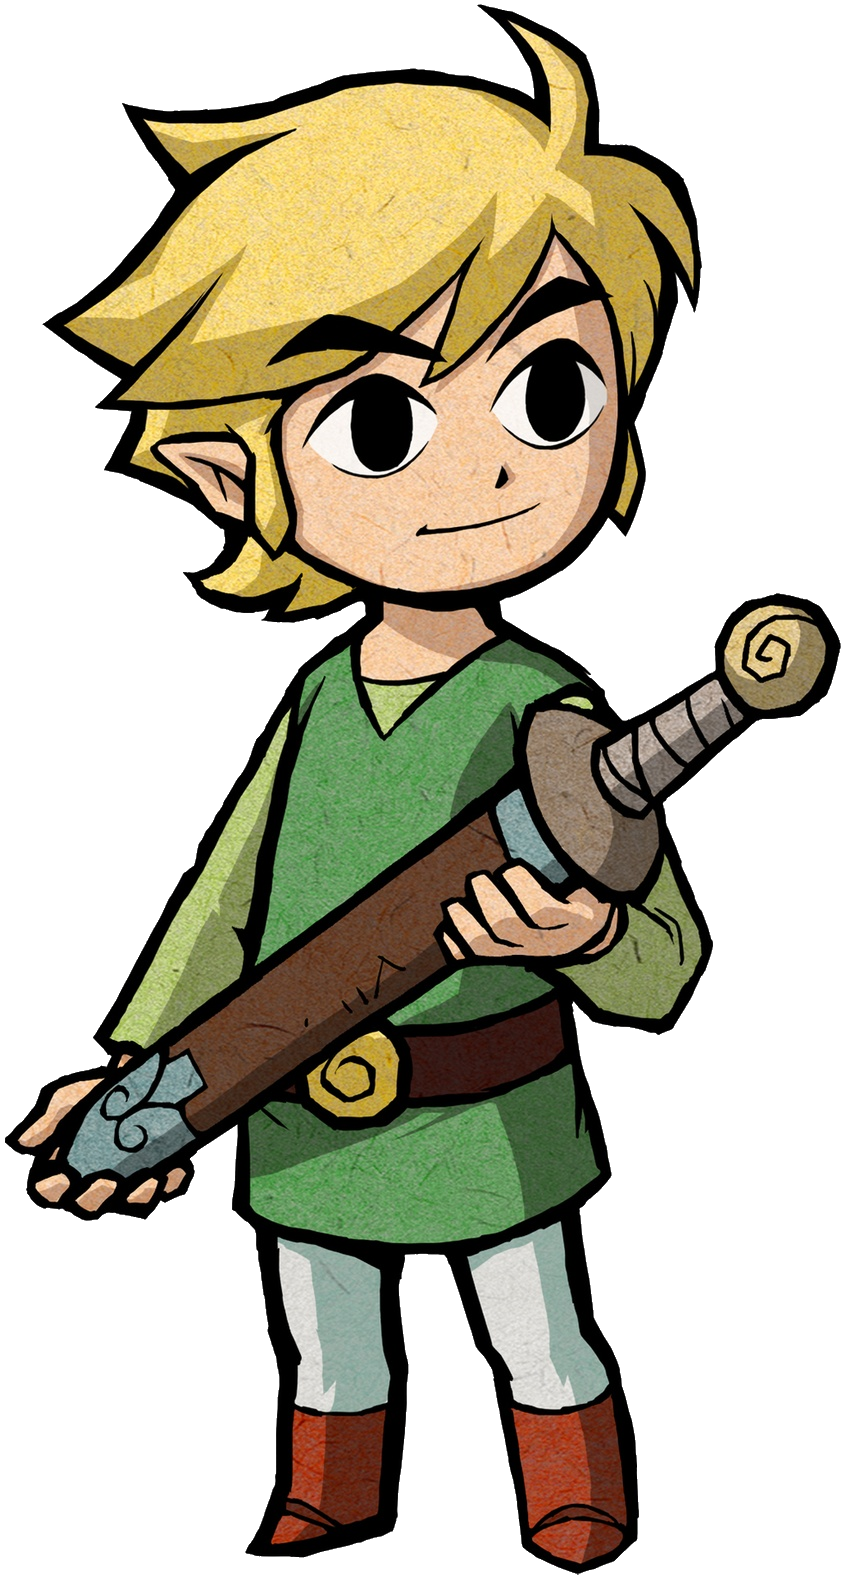 Ask Link The Hylian Link Deviantart Tattoo Ideas